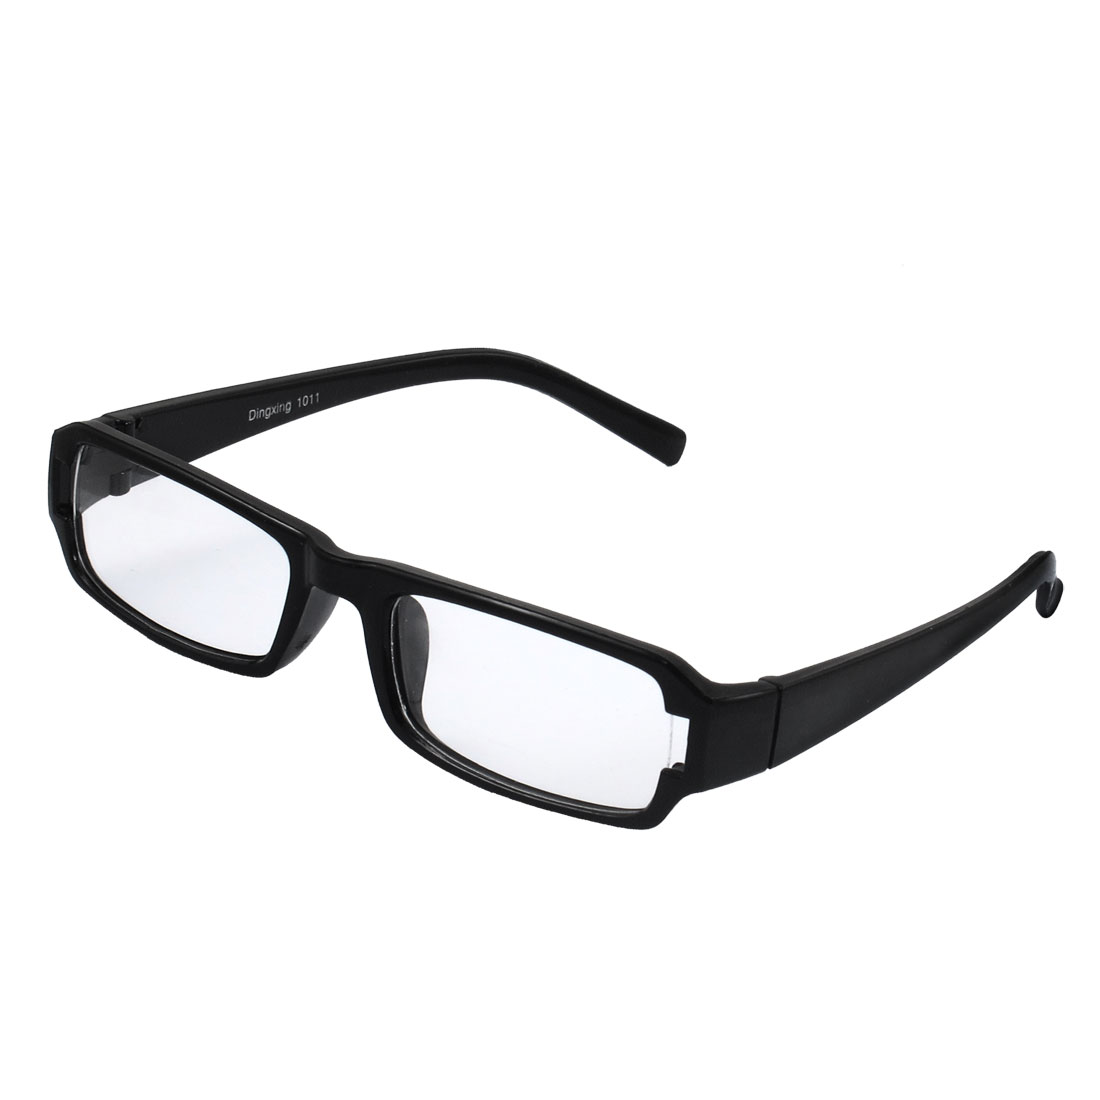 Lady Full Frame Rectangle Lens Plain Plano Eyeglass Black